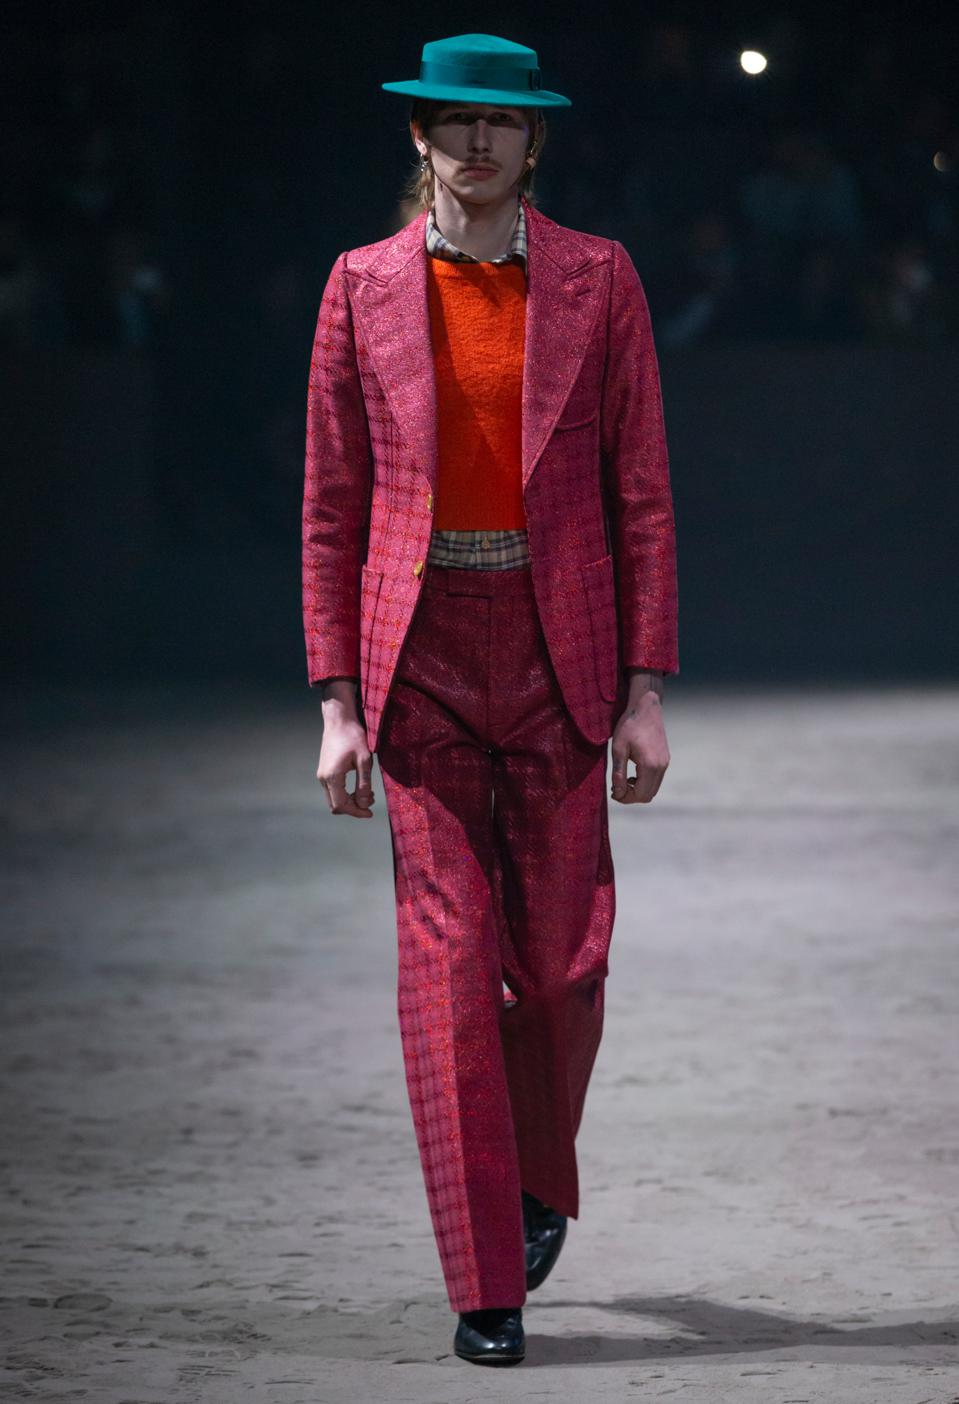 A suit that is: bold, tailored, unique, special